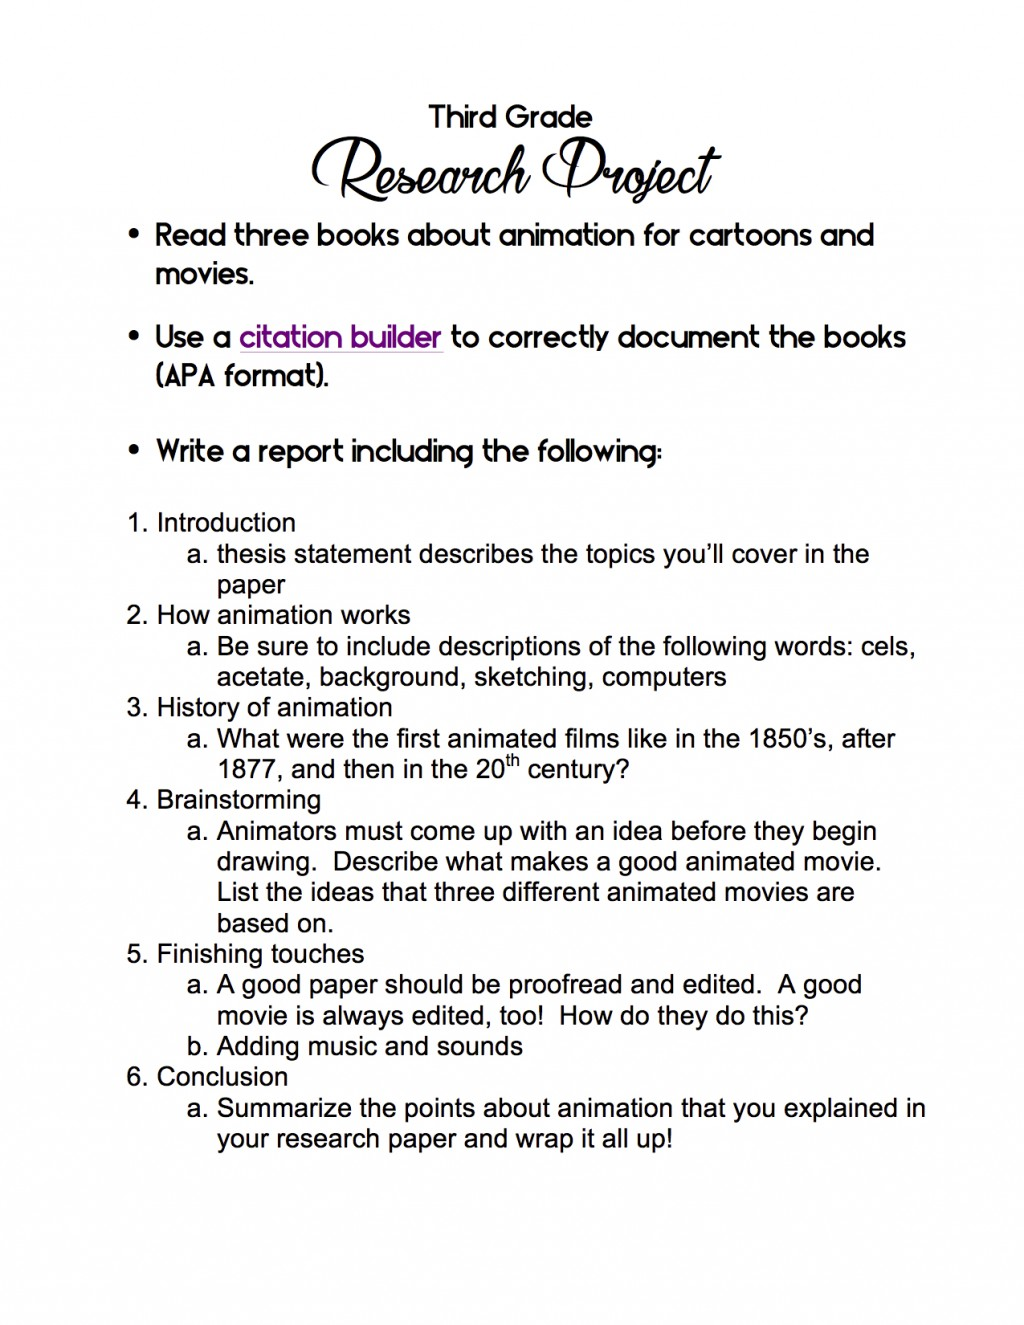 002 Research Paper Cancer Ideas 3rd Grade Shocking Topic Large